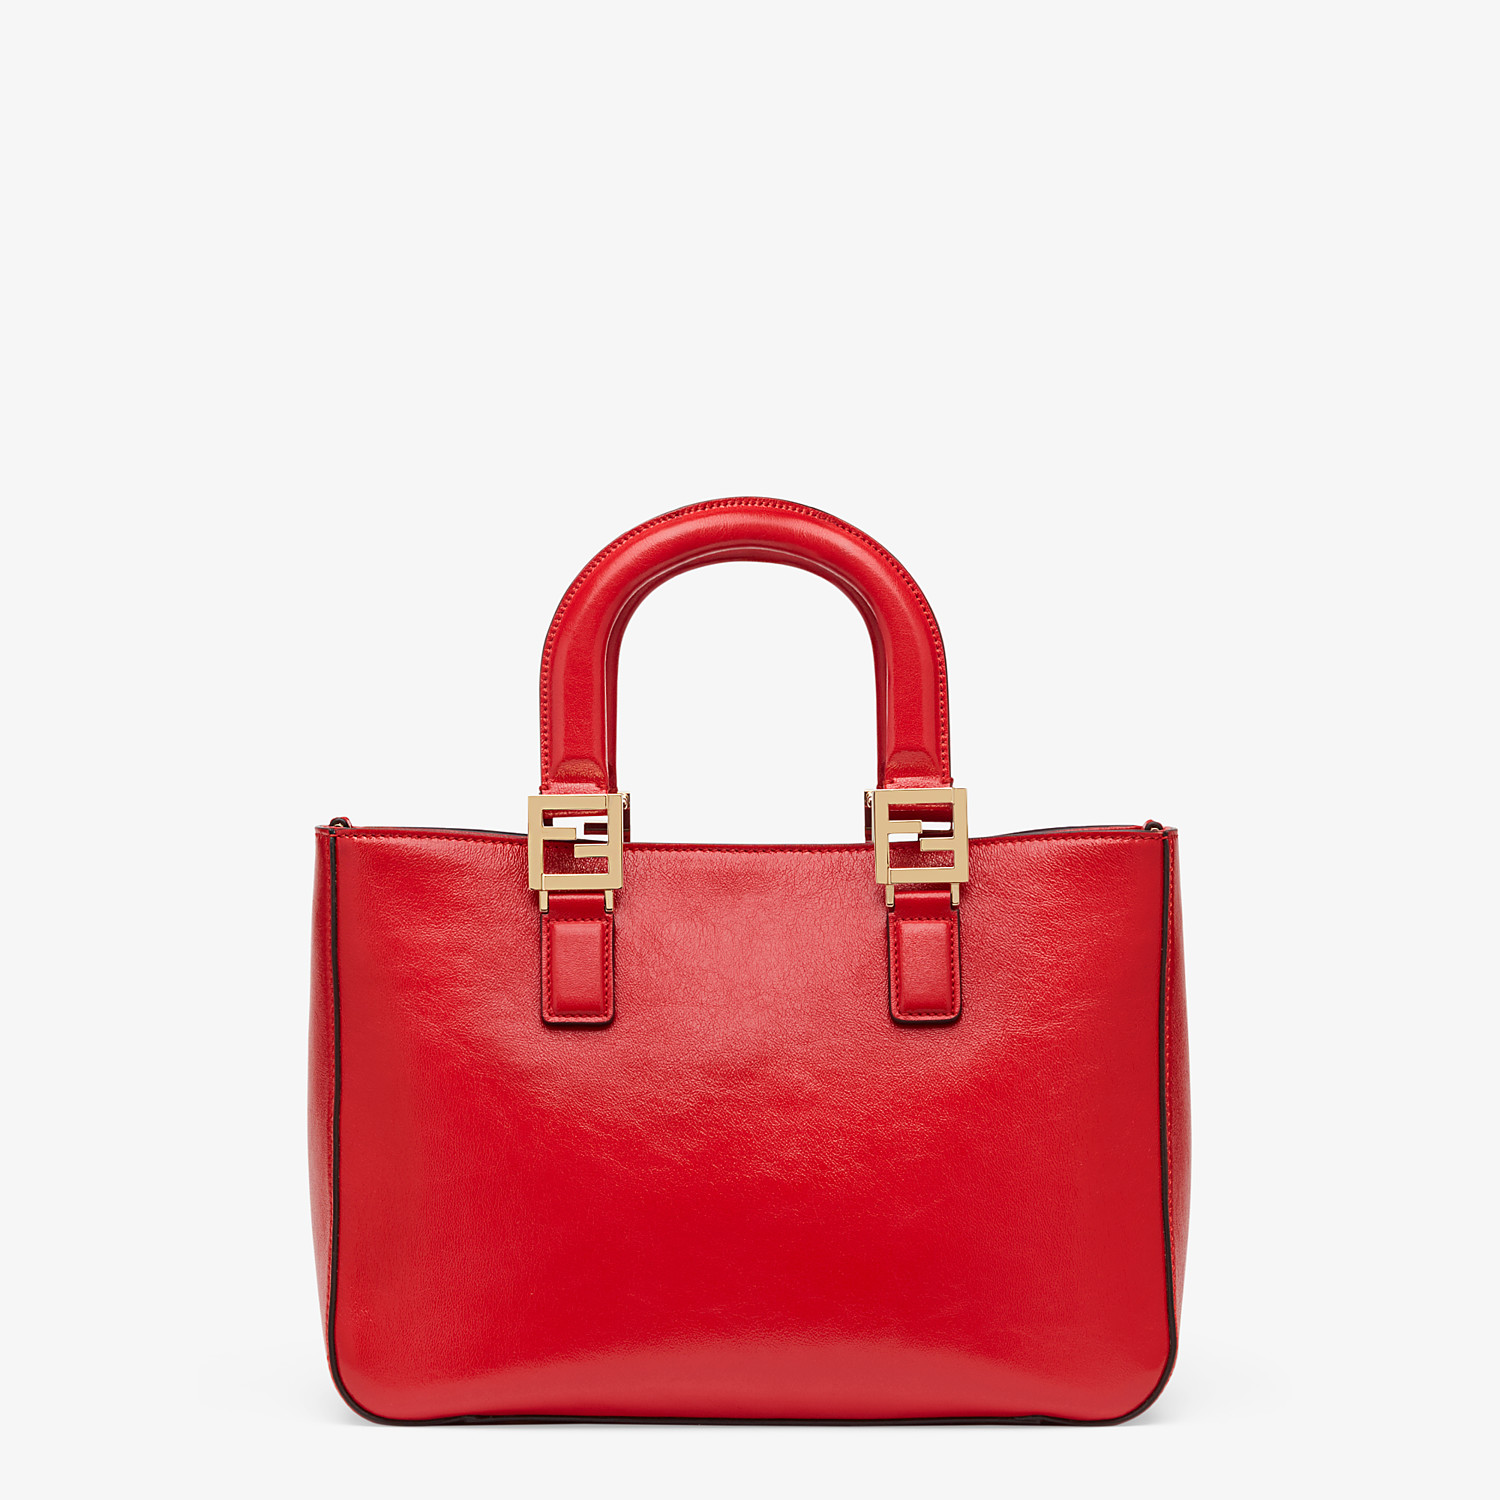 FENDI FF TOTE SMALL - Red leather bag - view 4 detail